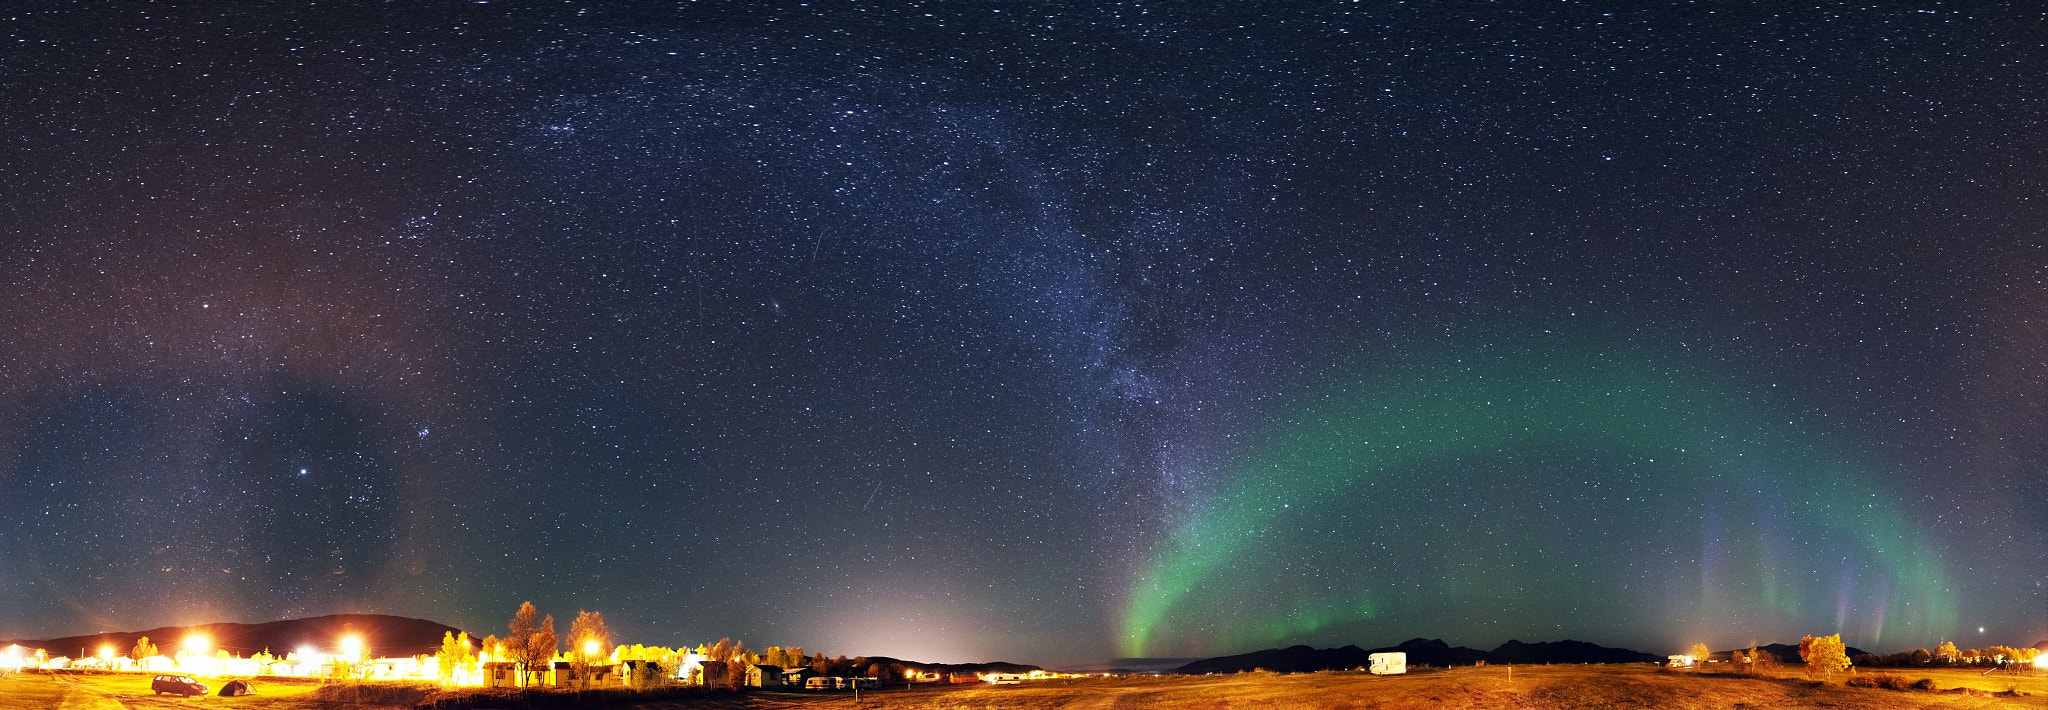 Photograph Nothern Lights- and Milky Way-Arch by Christoph  Otawa on 500px